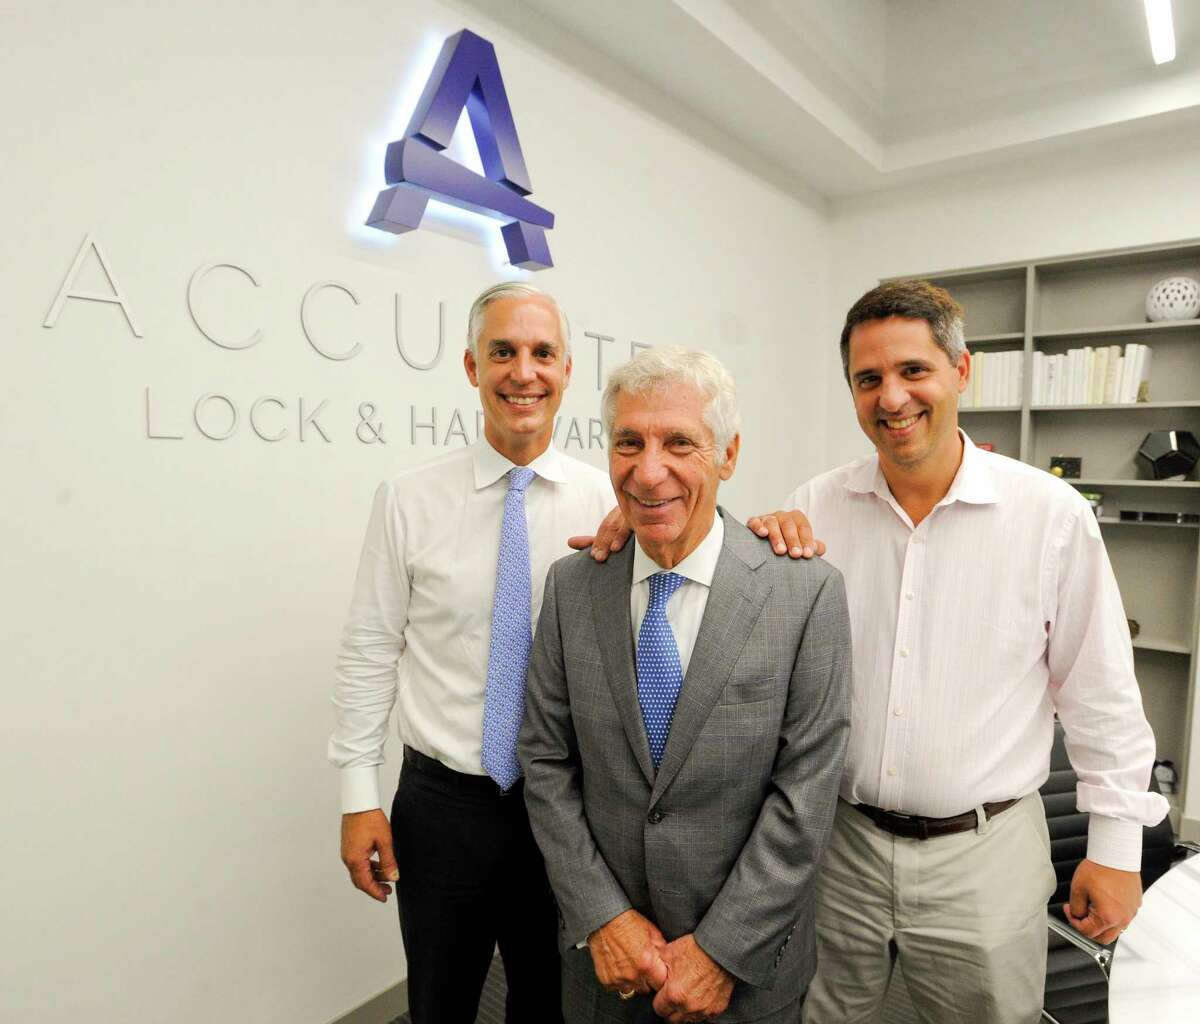 From left, Accurate Lock & Hardware's CEO, Reed Salvatore; chairman Ronald Salvatore; and vice president Rodd Salvatore are photographed on Aug. 28, 2019 at their company's headquarters at 1 Annie Place, on the West Side of Stamford, Conn.